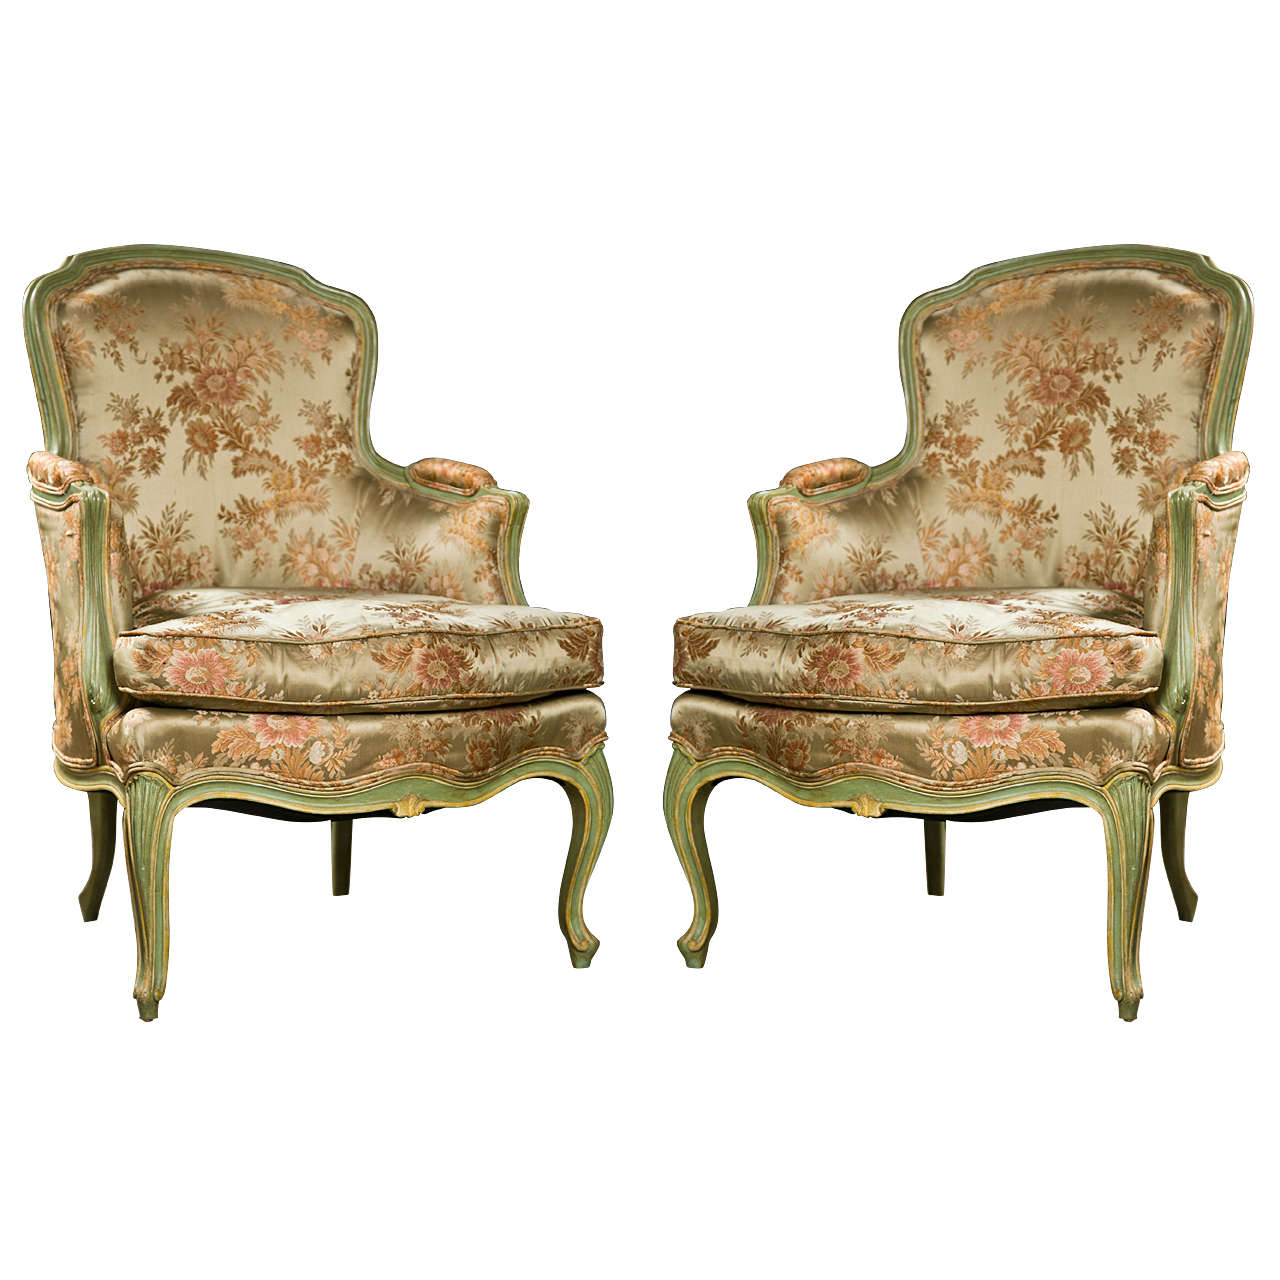 Merveilleux Pair Of French Louis XVI Style Bergere Chairs For Sale